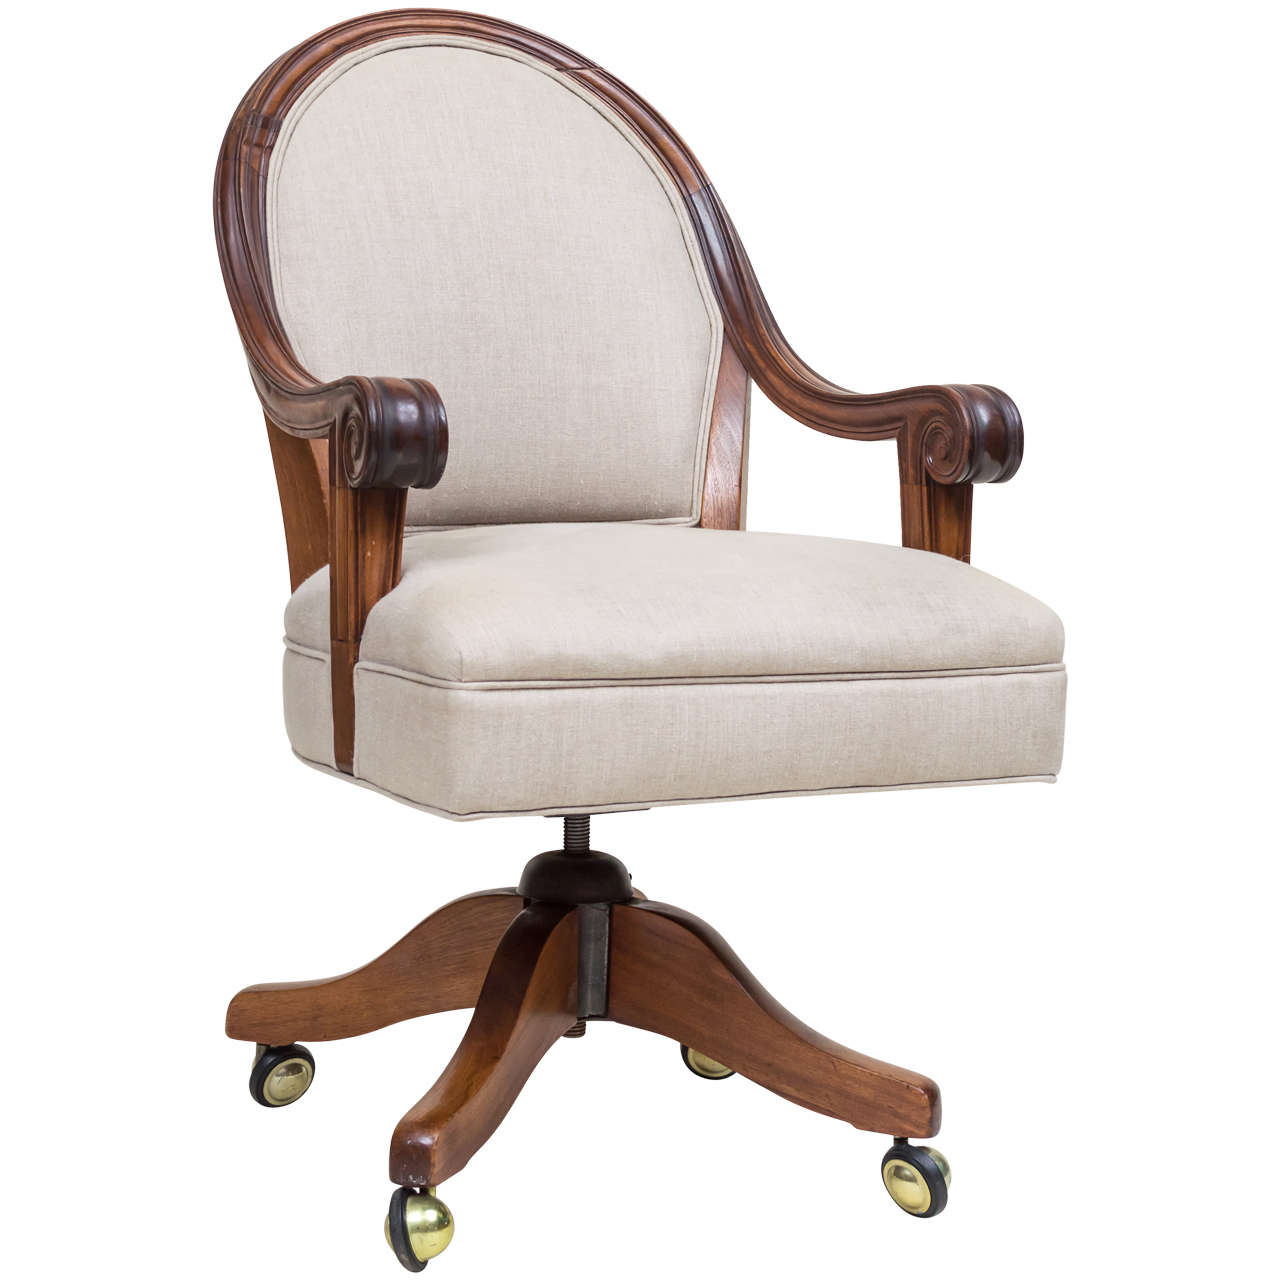 office chair for sale white leather modern late victorian walnut desk at 1stdibs